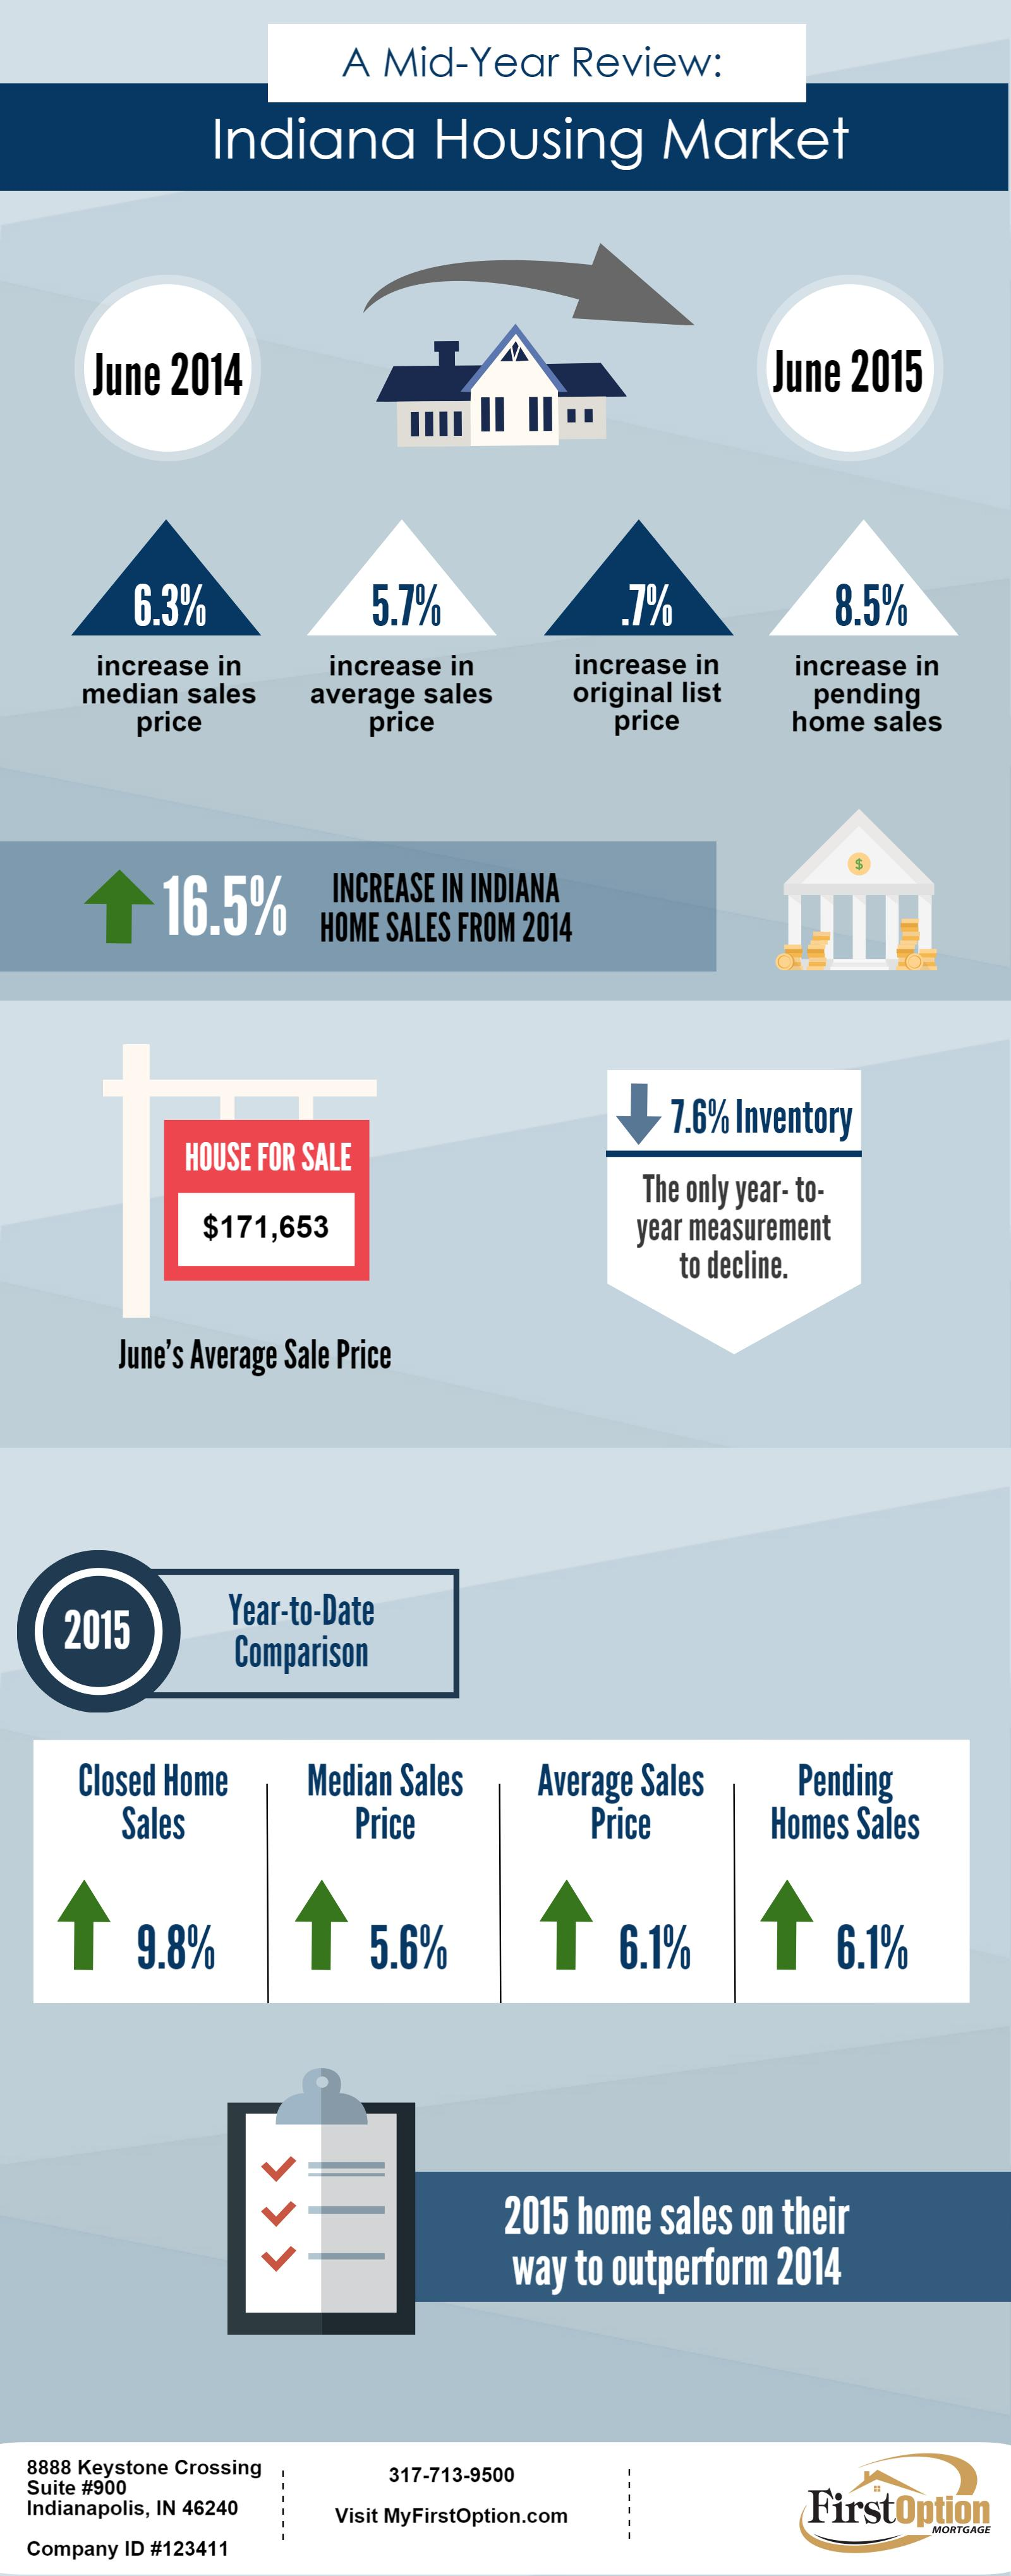 A Mid-Year Review on the Indiana Real Estate Market